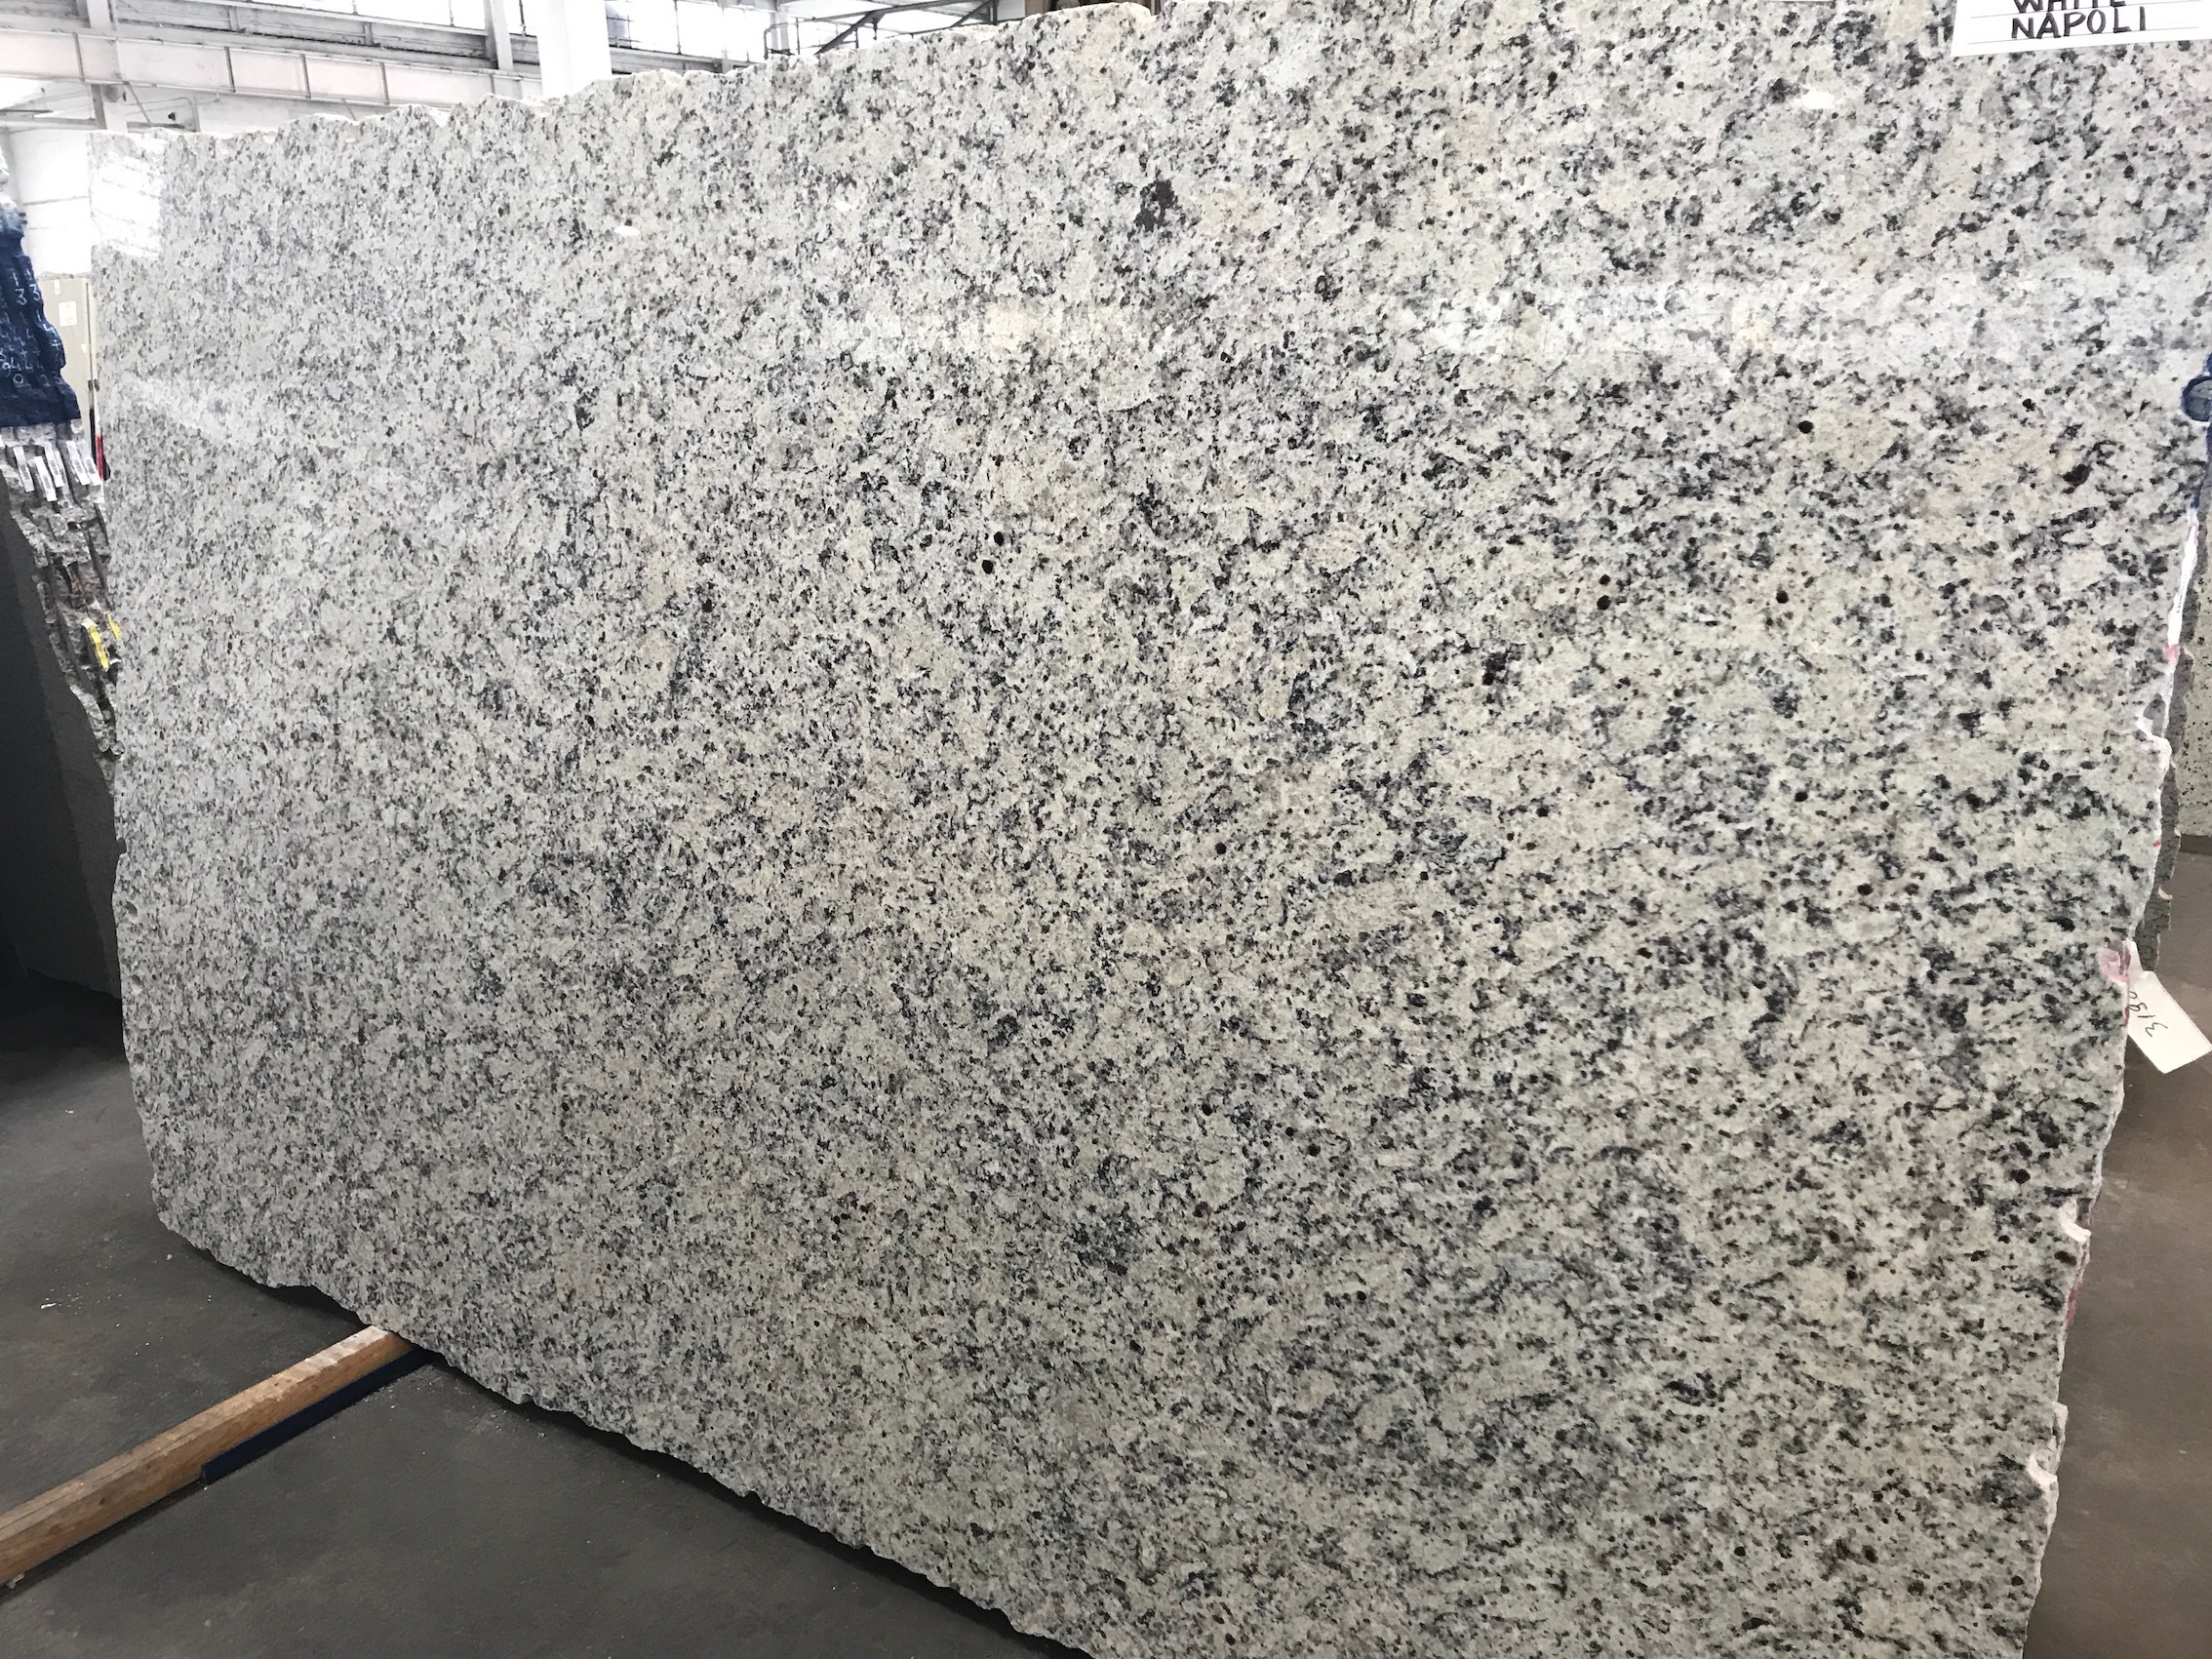 White Napoli Granite Global